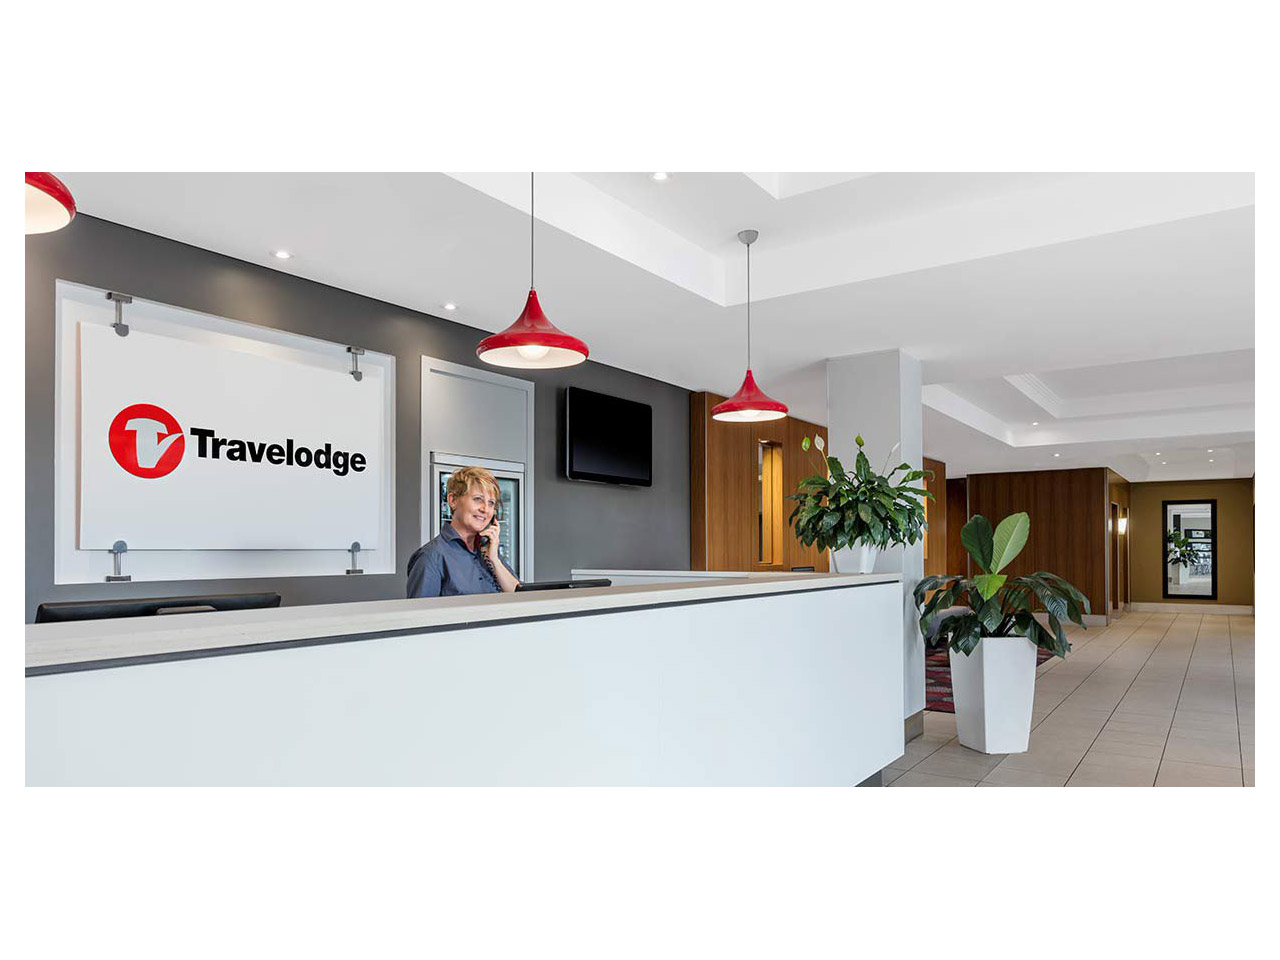 Travelodge reception area with lady on phone